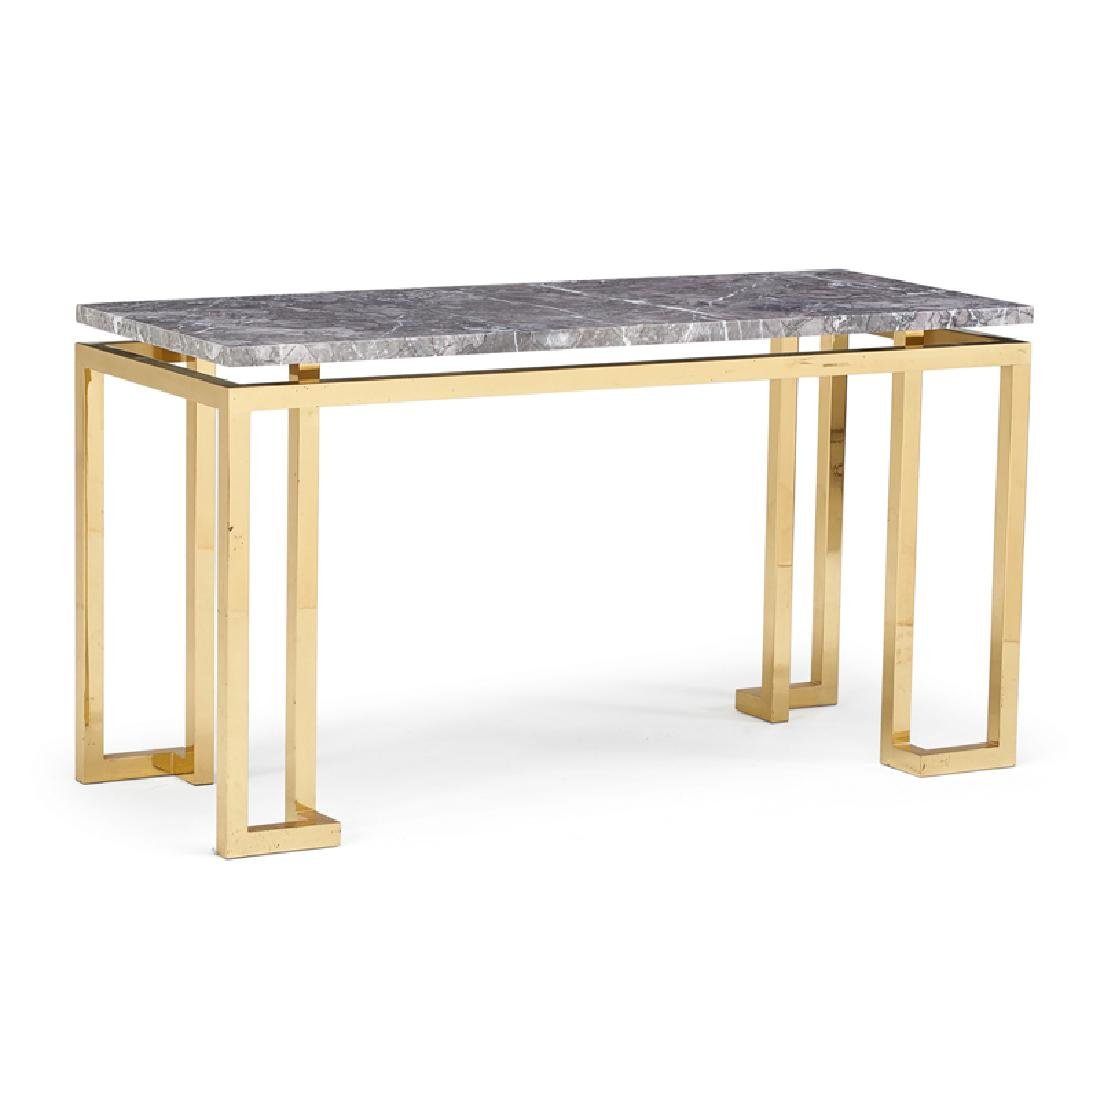 MODERN BRASS PLATED CHROME CONSOLE TABLE